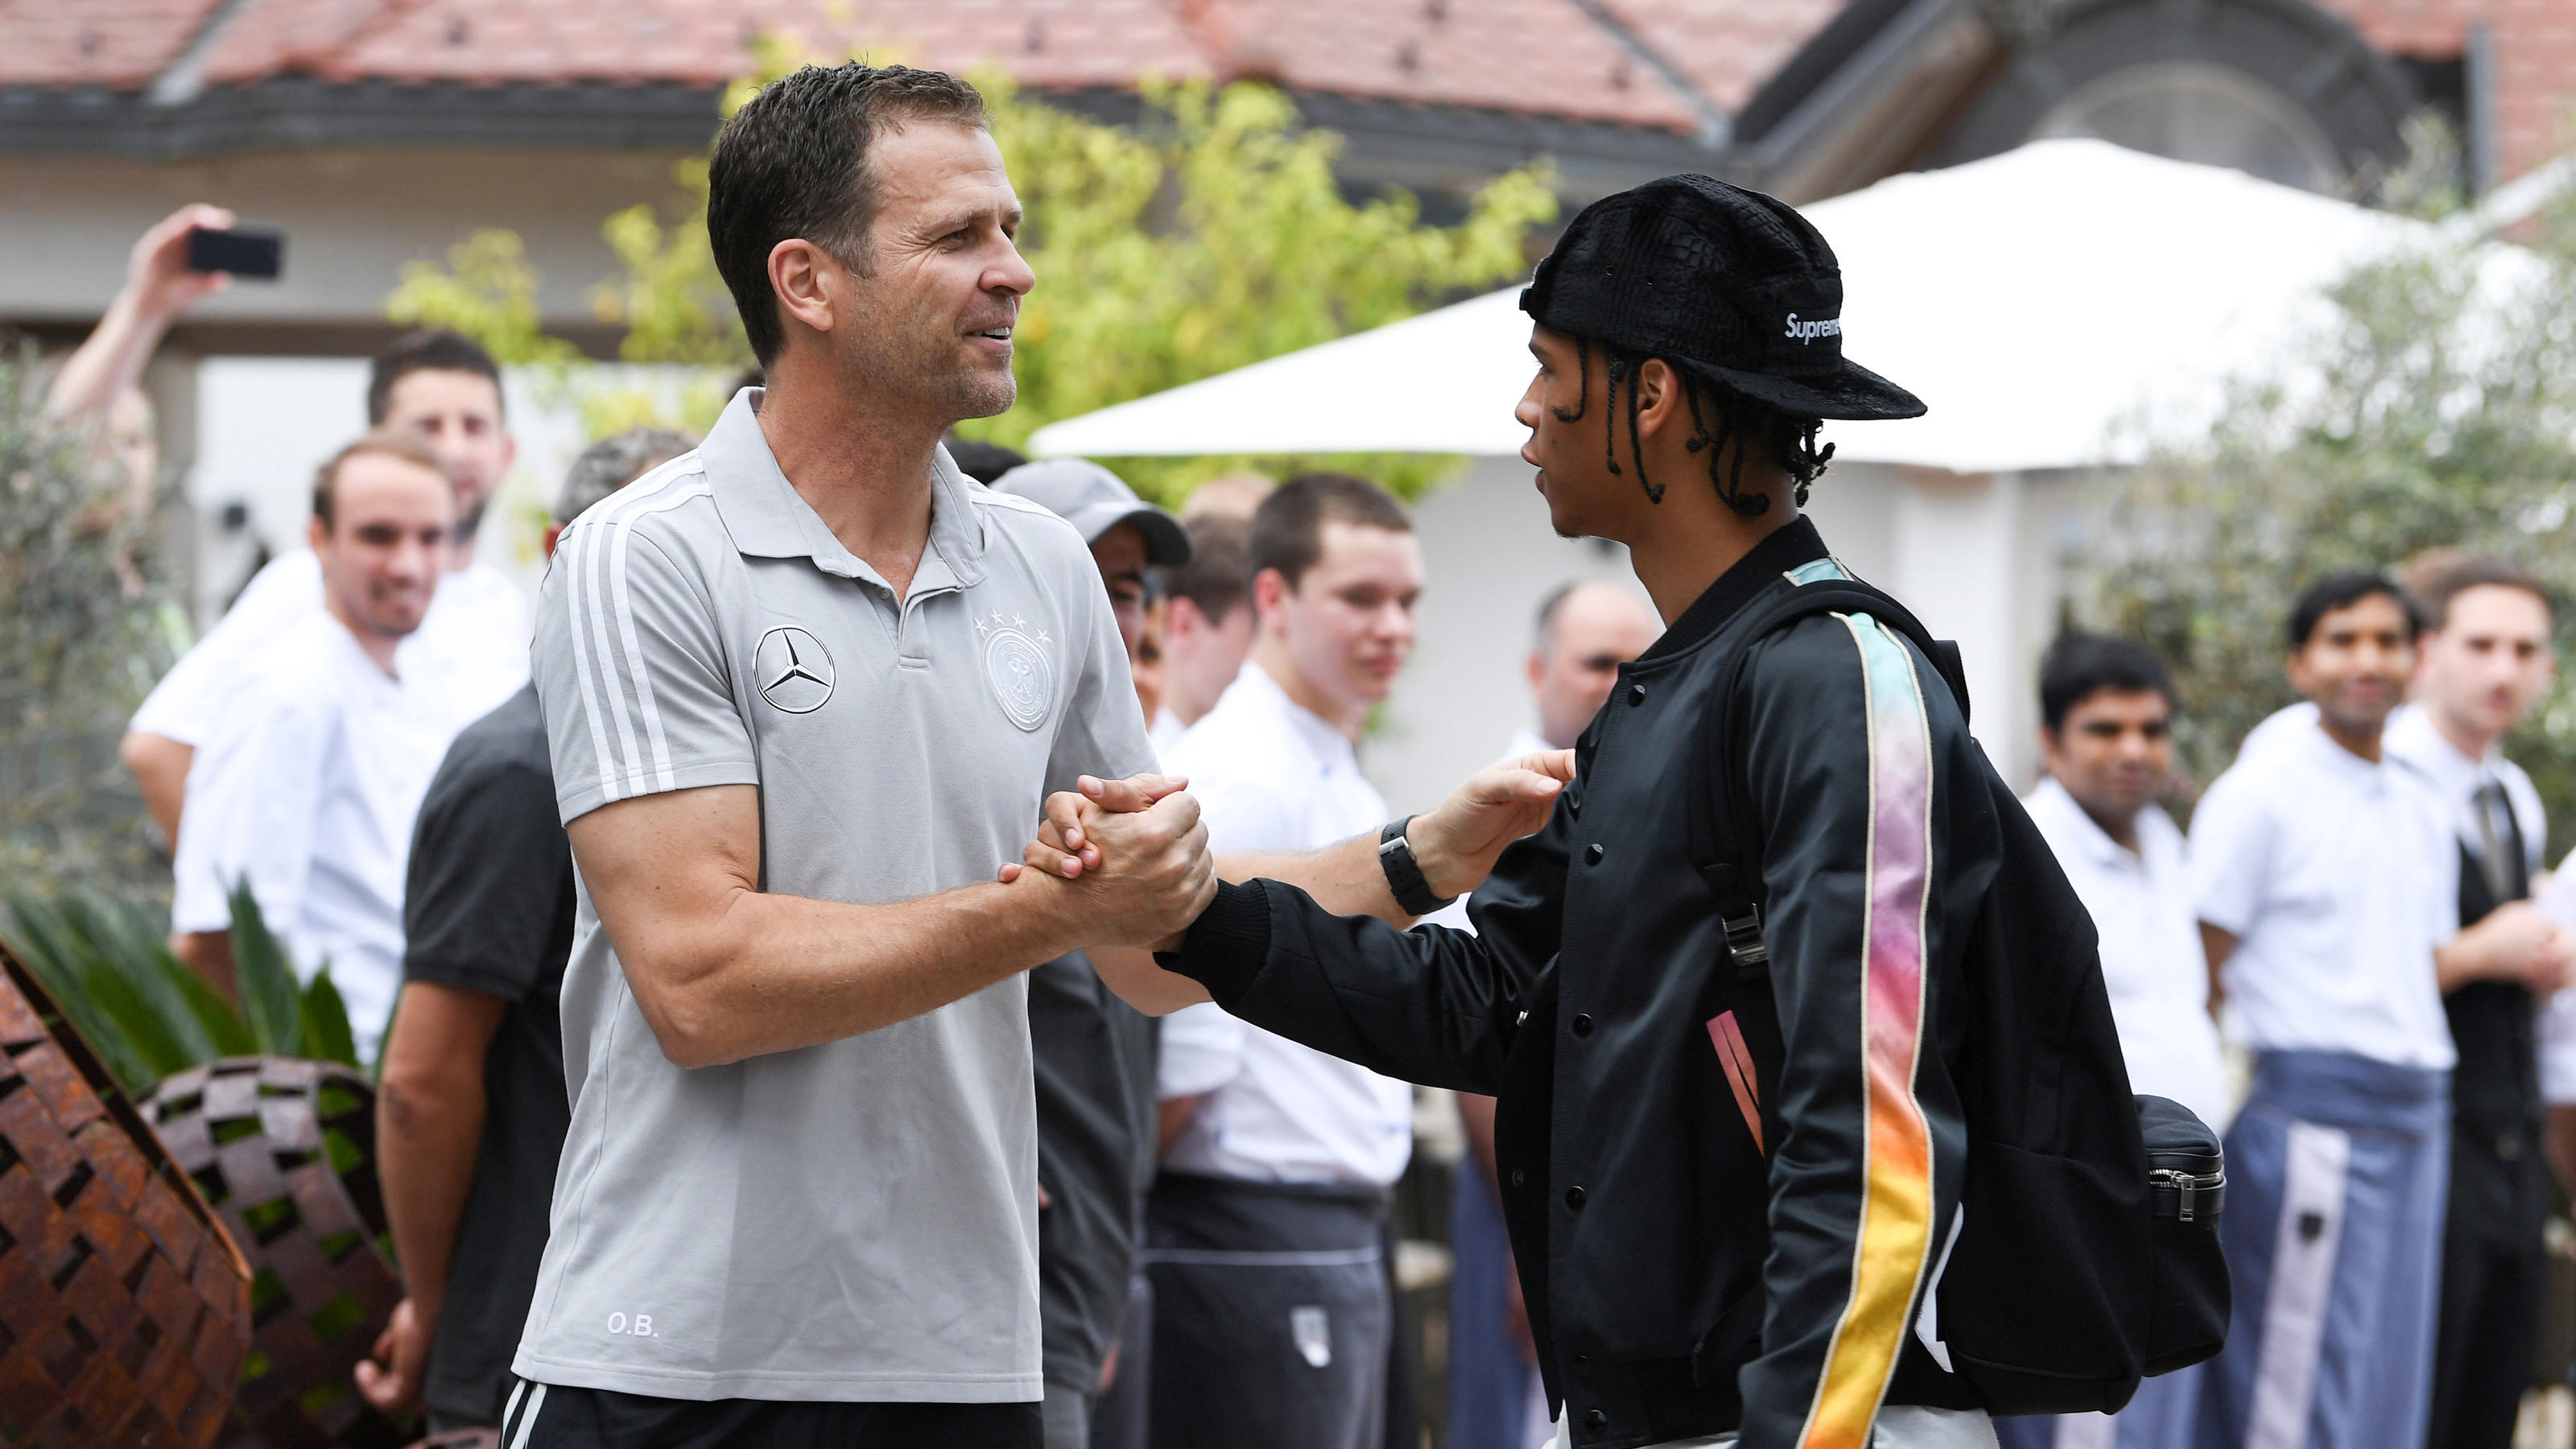 Soccer Football - FIFA World Cup - Germany Training - Eppan, Italy - May 23, 2018   German team manager Oliver Bierhoff welcomes Leroy Sane         Markus Gilliar/Pool via Reuters